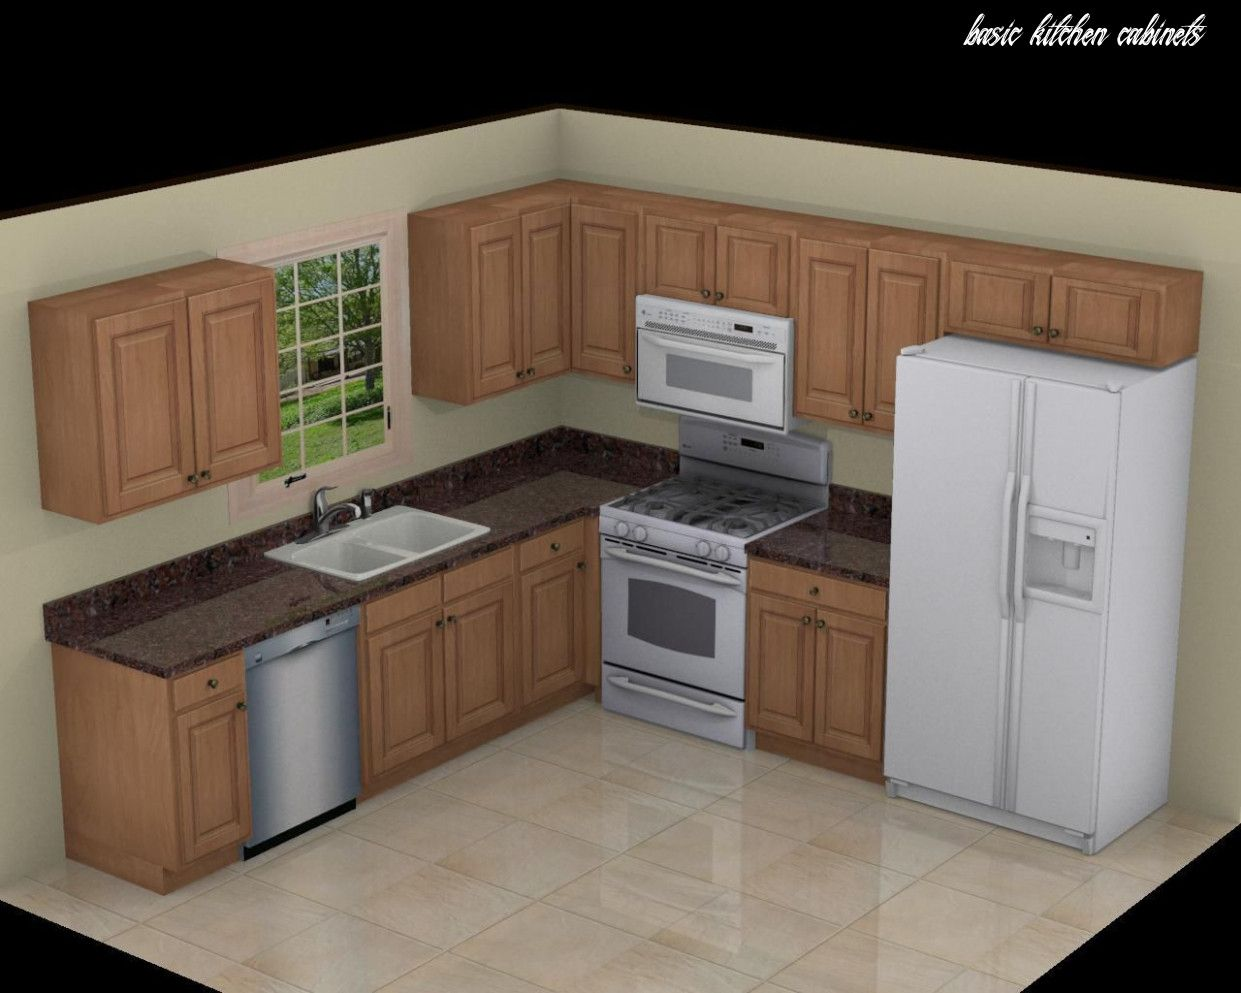 10 Common Myths About Basic Kitchen Cabinets In 2020 Simple Kitchen Design Simple Kitchen Cabinets Kitchen Design Diy